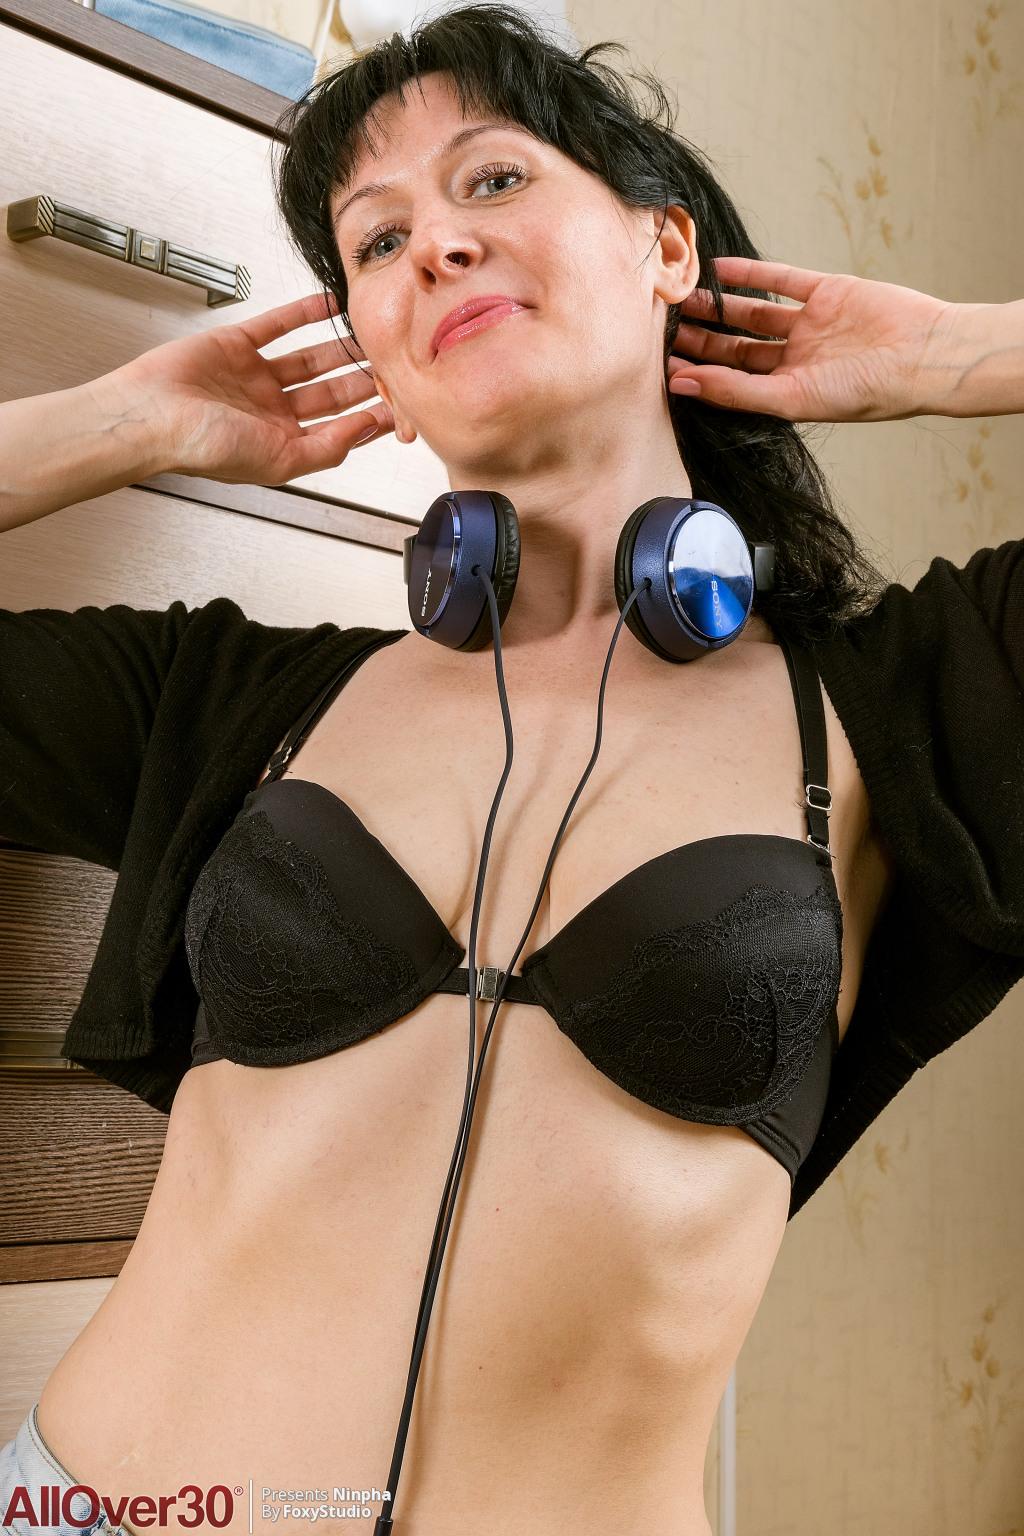 ninpha-headphones-hottie-01